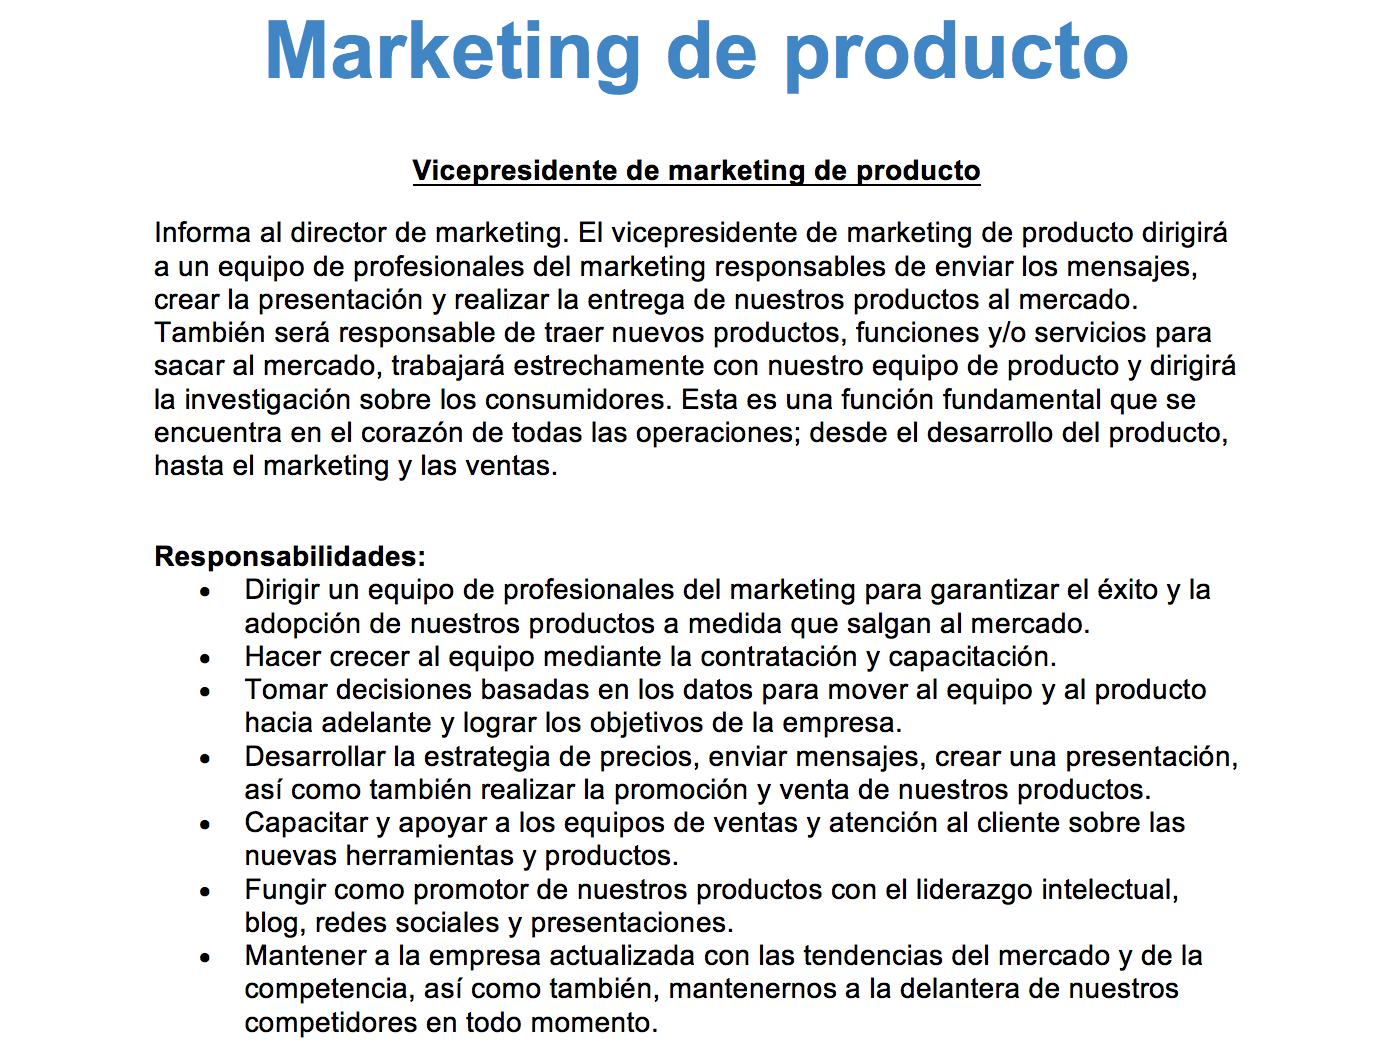 Descripciones de empleos de marketing